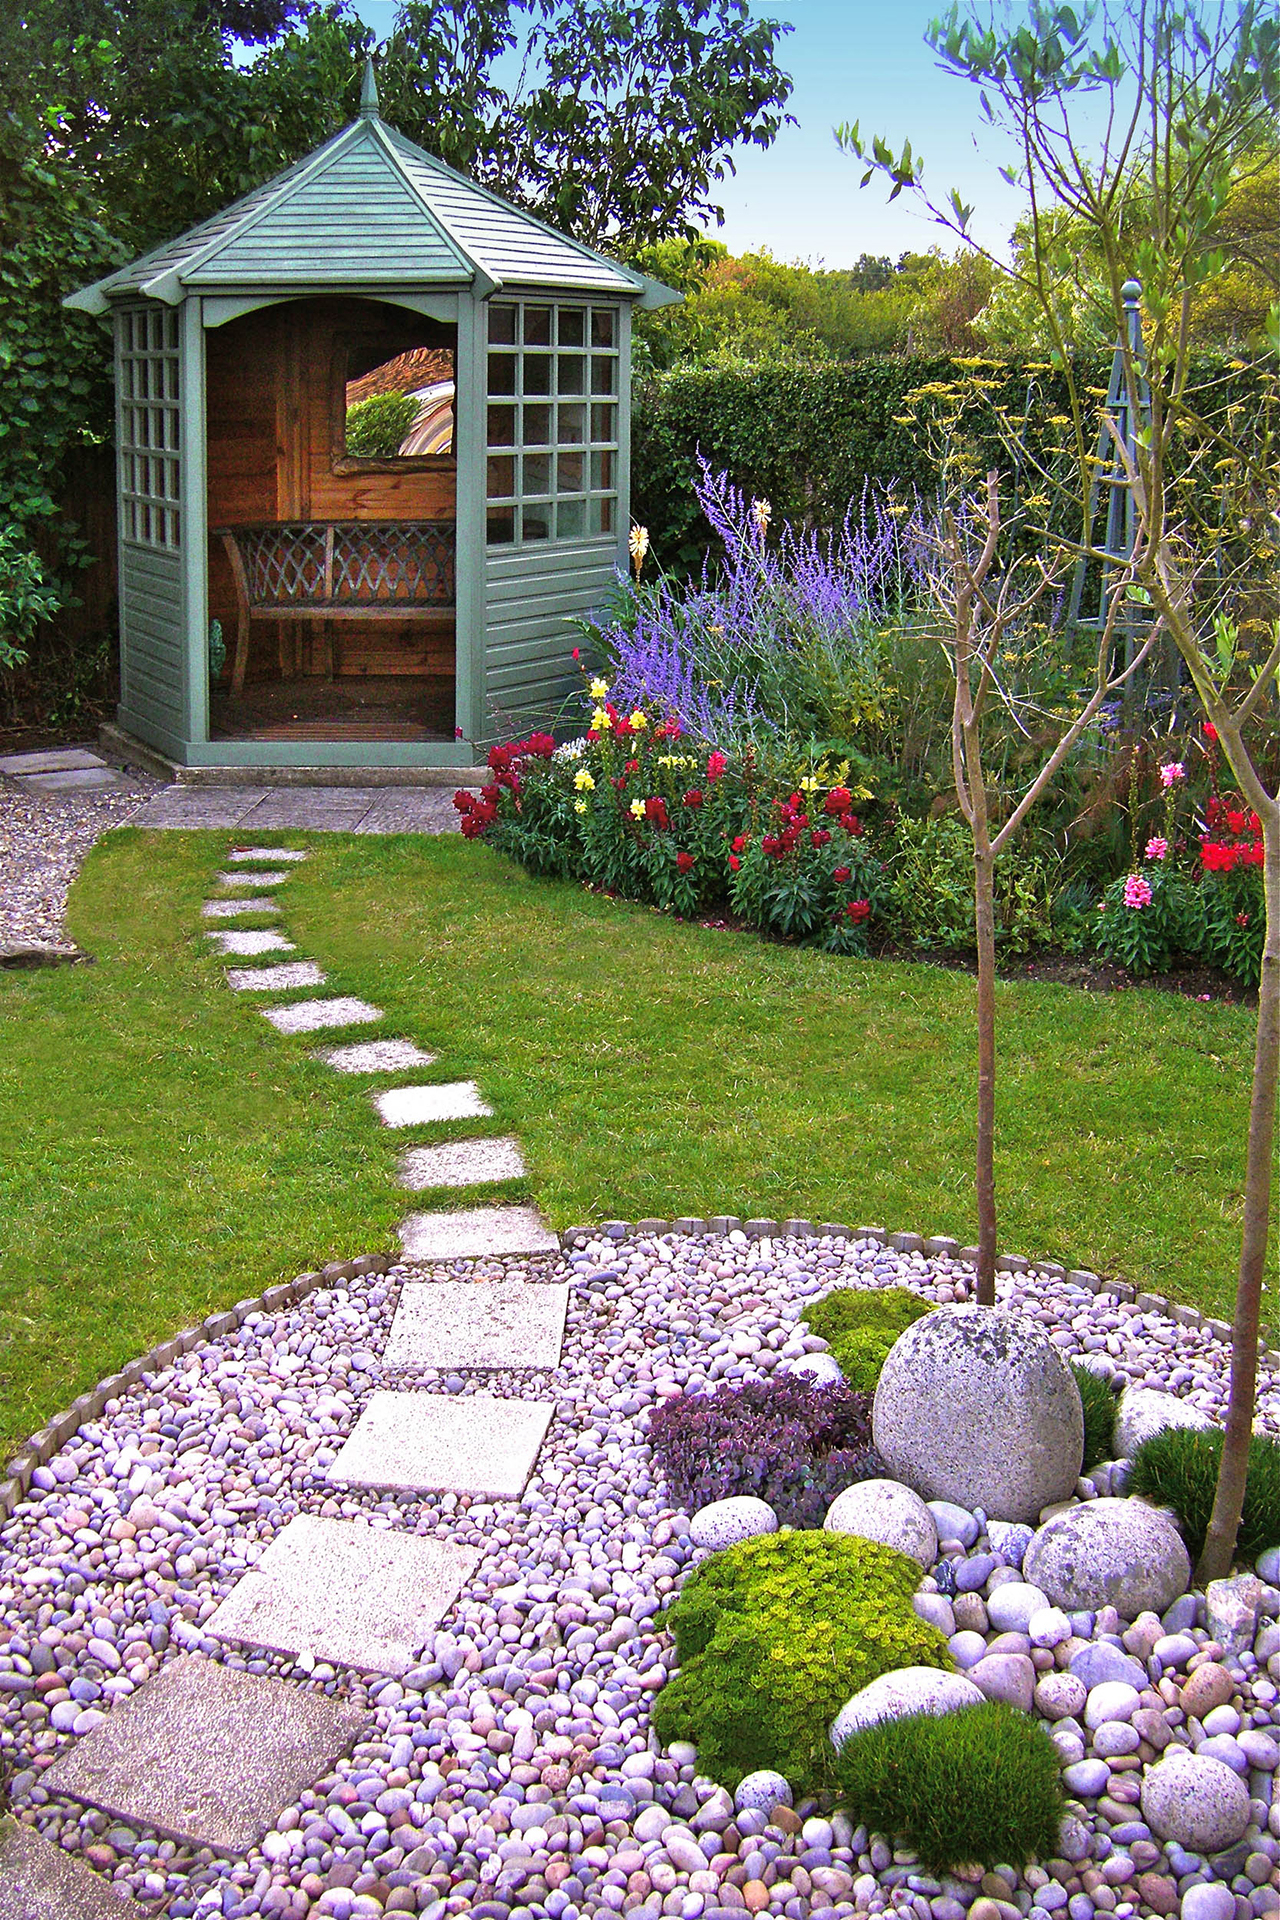 50 Best Backyard Landscaping Ideas And Designs In 2019 within 14 Awesome Designs of How to Makeover Landscaping Images For Backyard